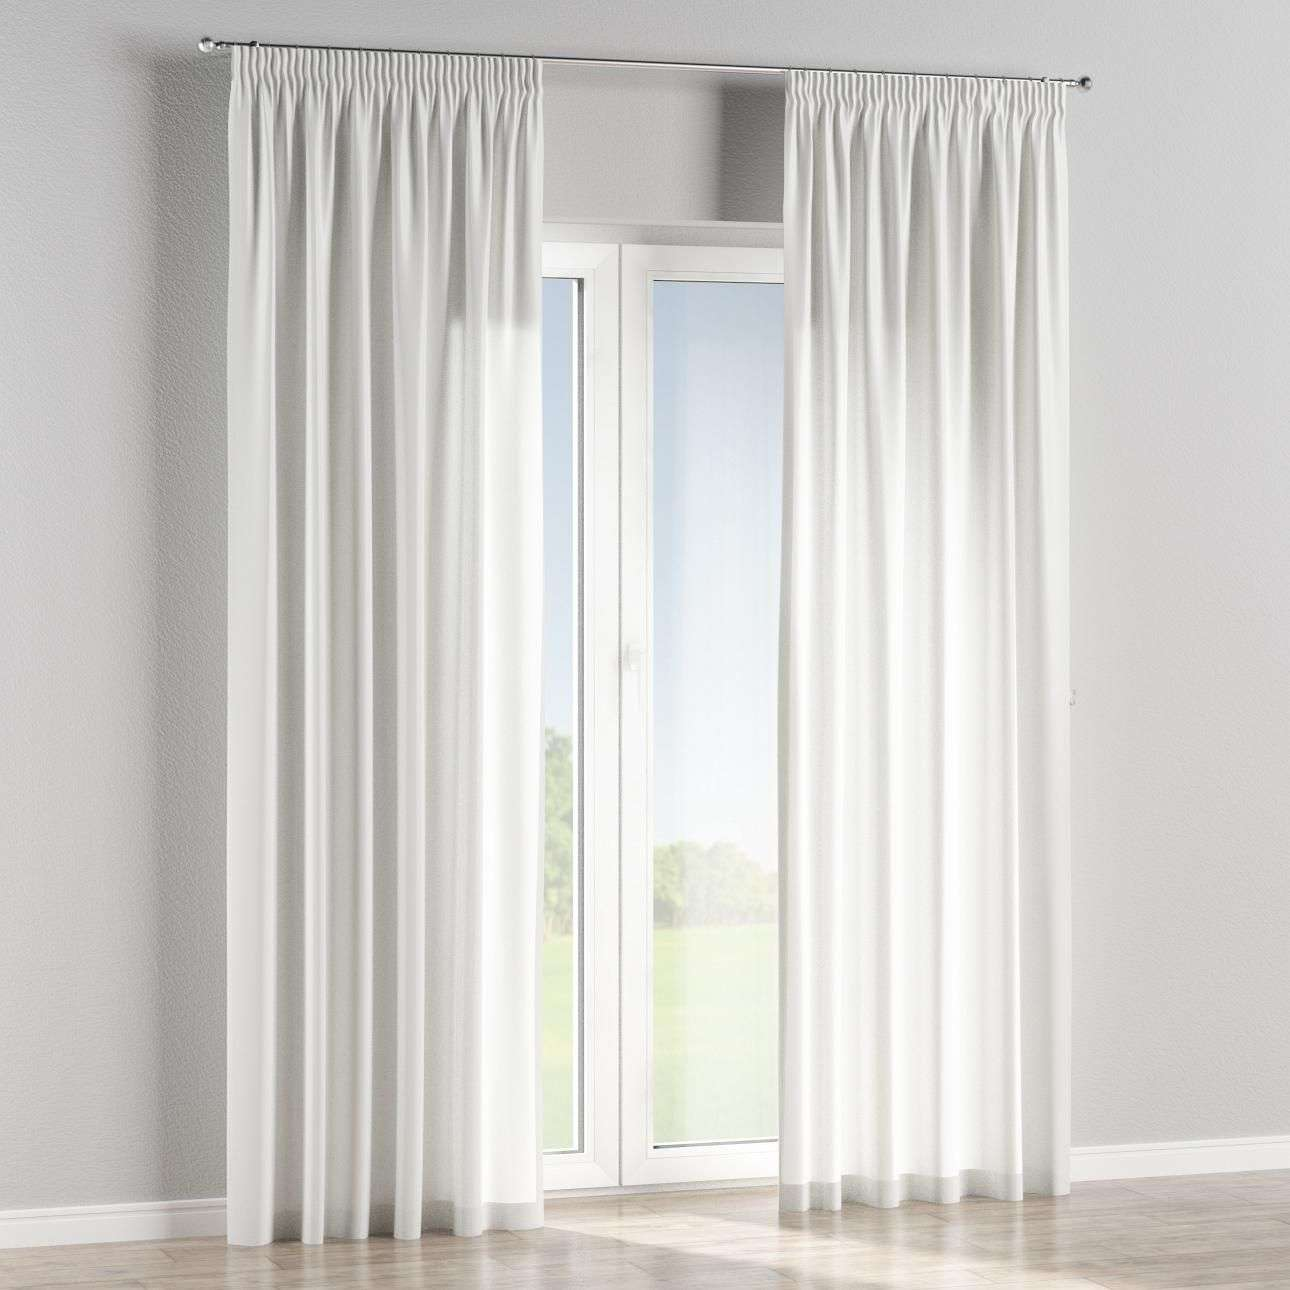 Pencil pleat curtains in collection Ashley, fabric: 137-43